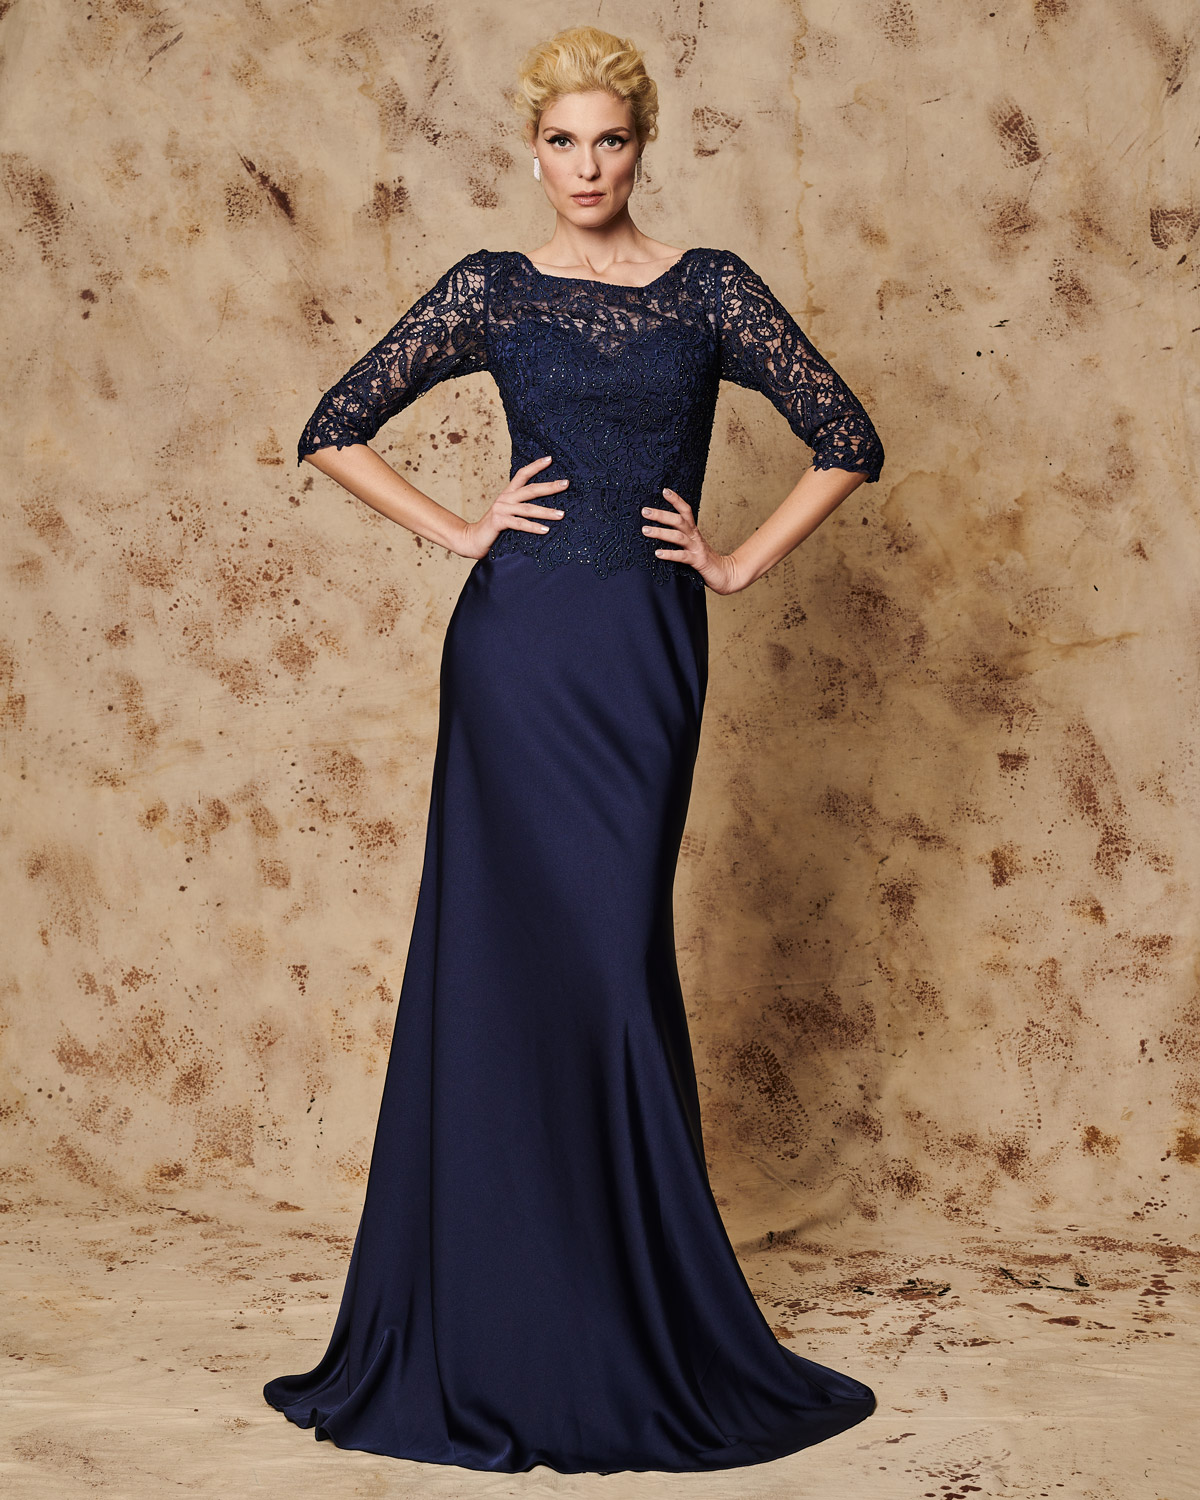 Classic Dresses / Long evening dress with lace bust and 3/4 sleeves